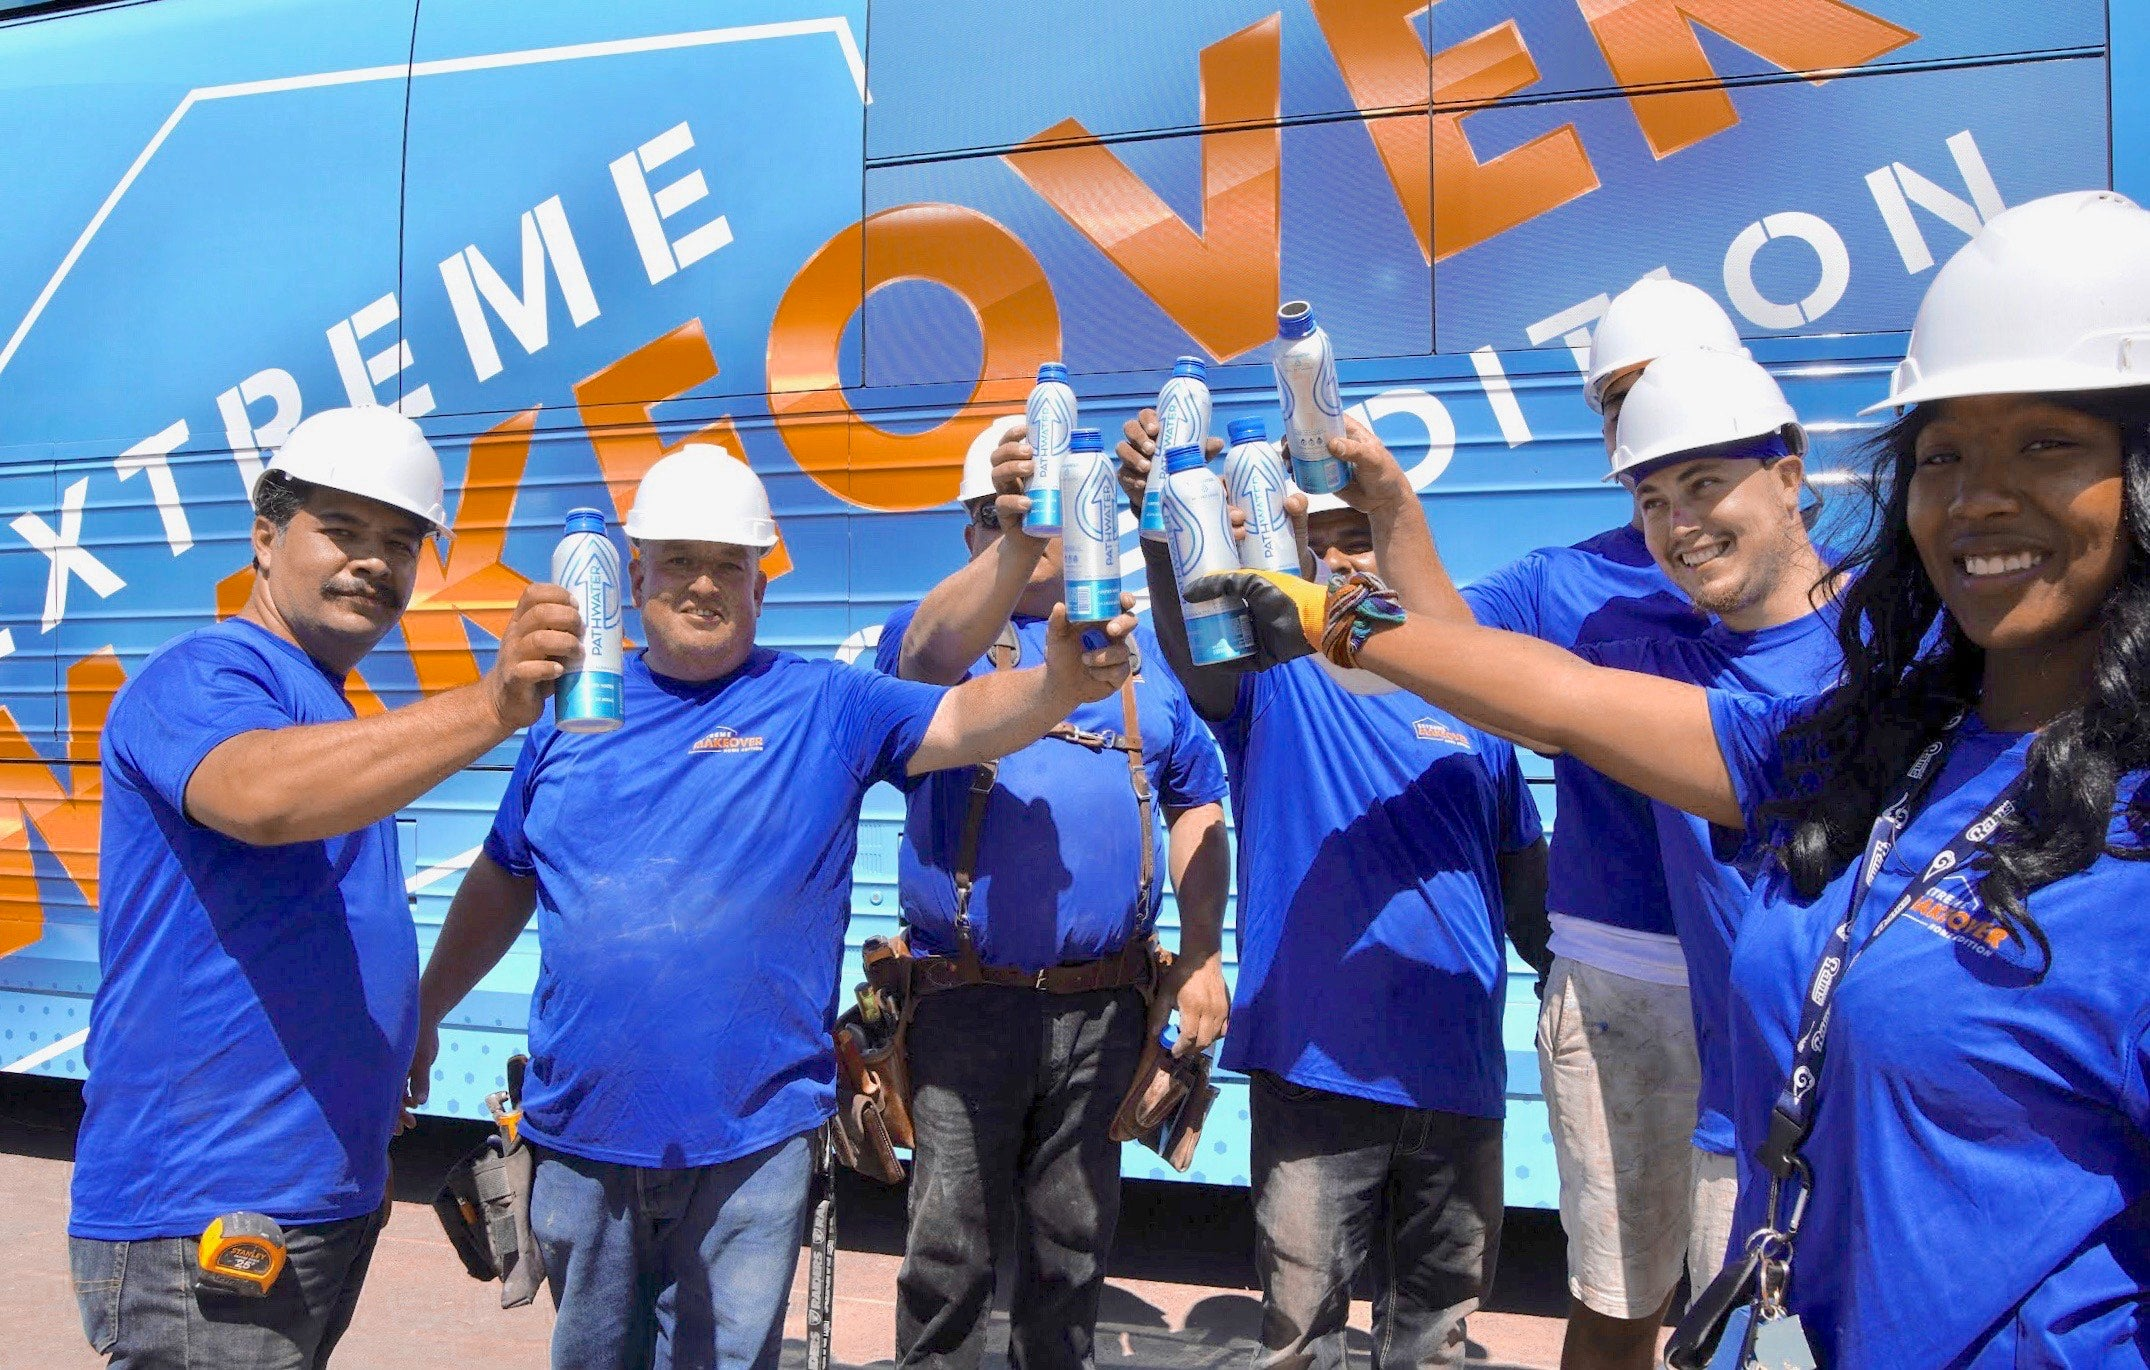 Extreme Home Makeover Eliminates 33,000+ Single-Use Plastic Water Bottles with the Power of PATHWATER